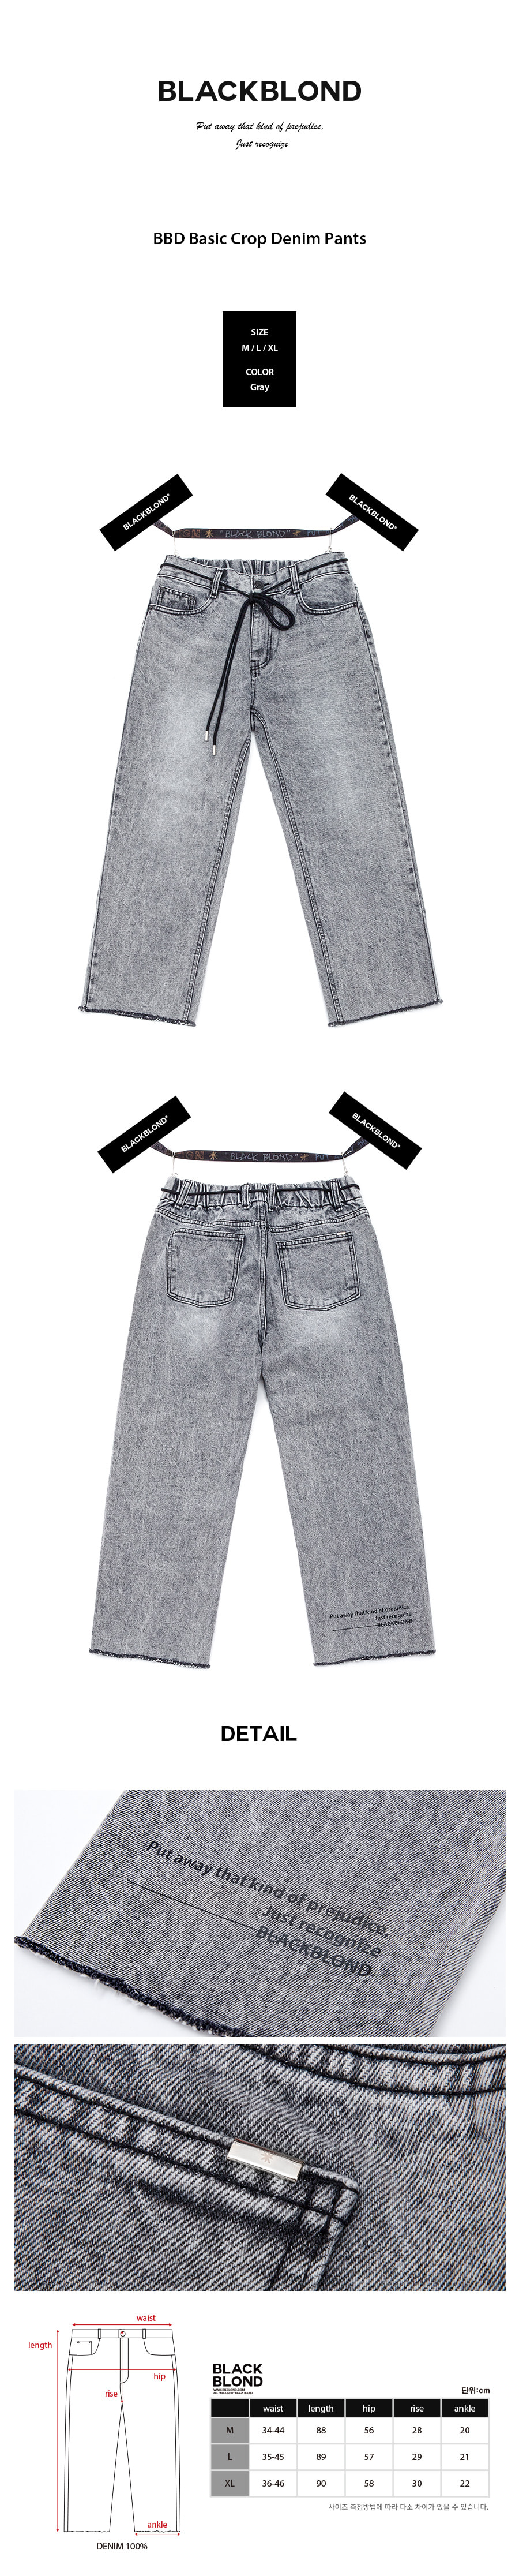 BLACKBLOND - BBD Basic Crop Denim Pants (Gray)